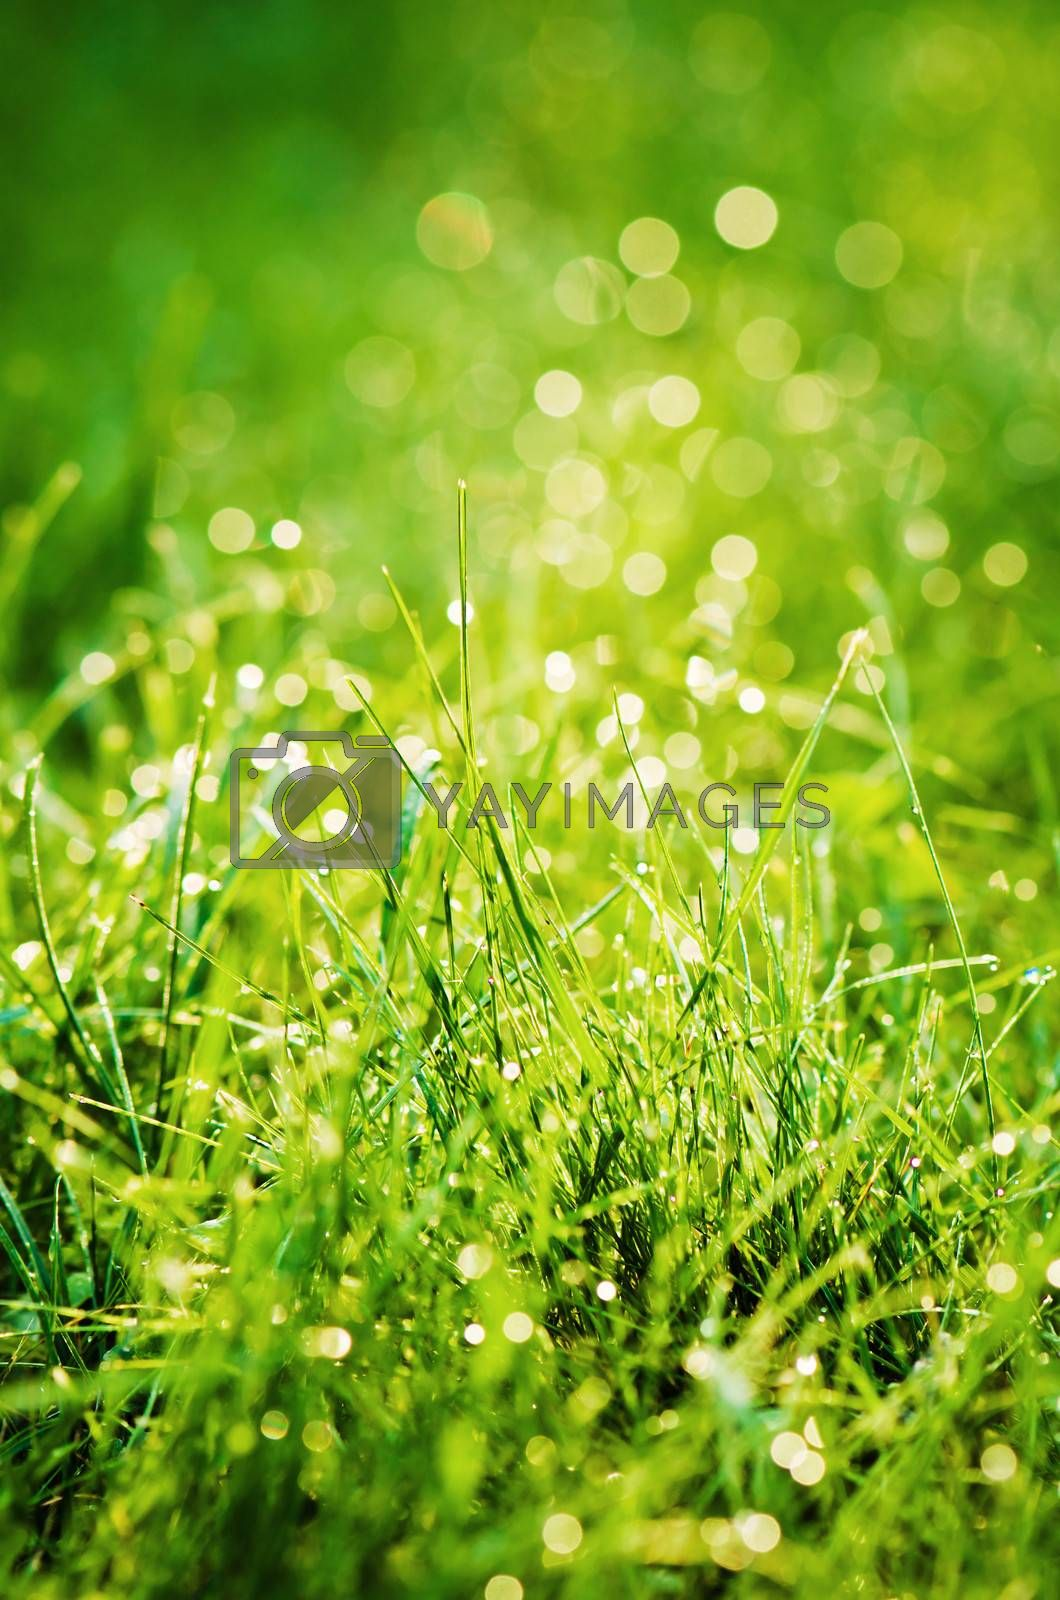 Drops of dew on the grass, lighted a morning light